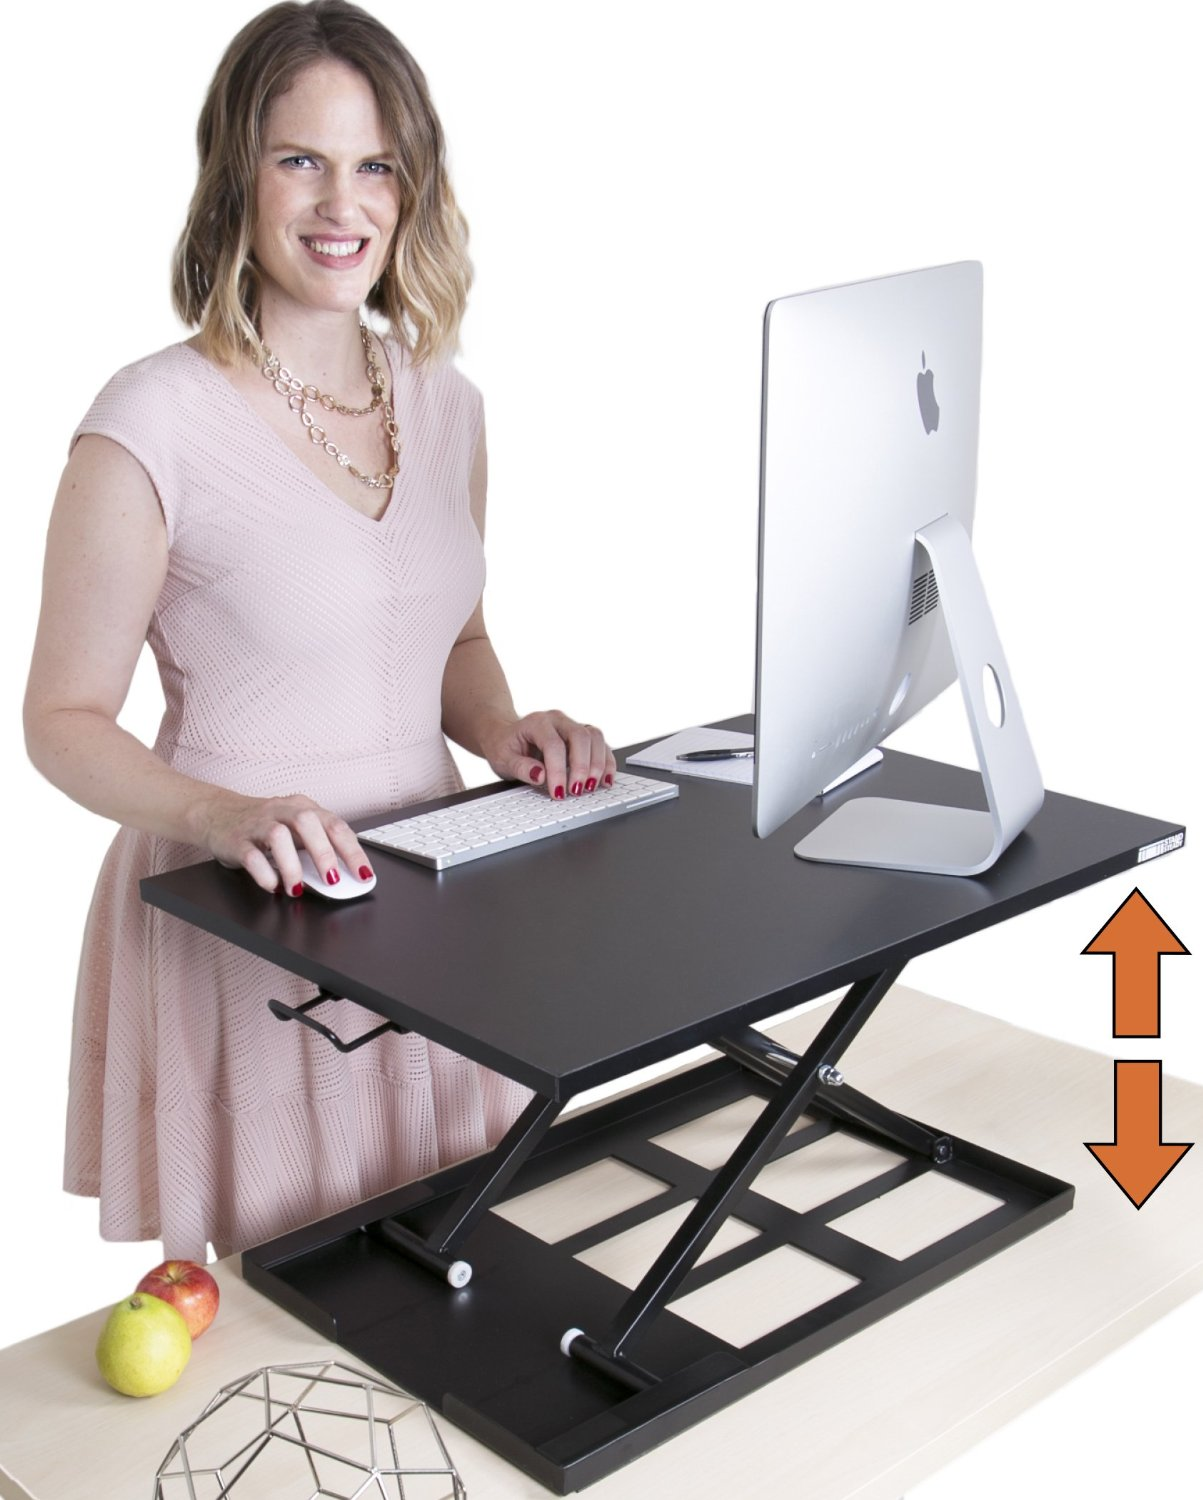 Top 10 Best Standing Desk Reviews — Top 10 Models for Your Comfort